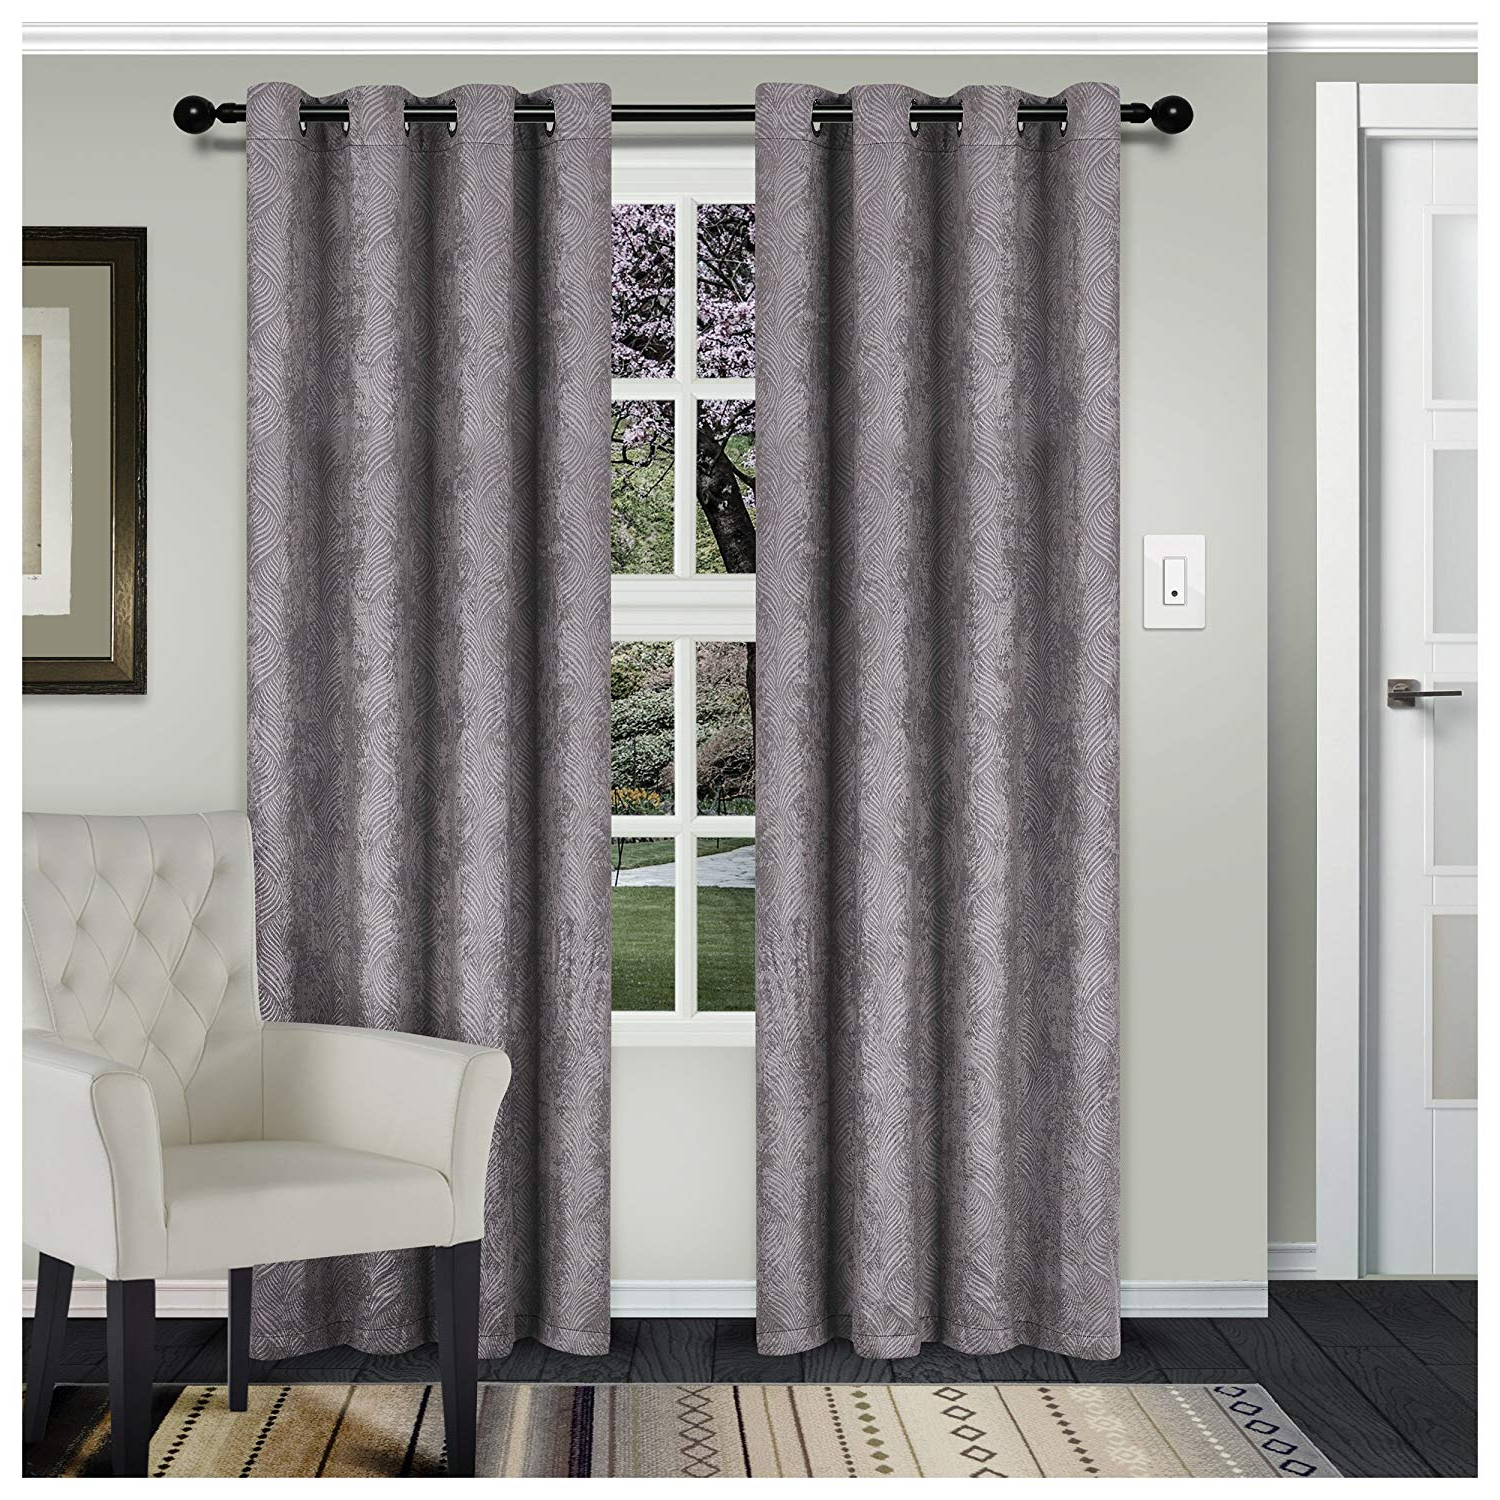 Thermal Insulated Blackout Curtain Panel Pairs Inside Most Recent Superior Waverly Blackout Curtain Set Of 2, Thermal Insulated Panel Pair  With Grommet Top Header, Beautiful Embossed Wave Room Darkening Drapes, (View 16 of 20)